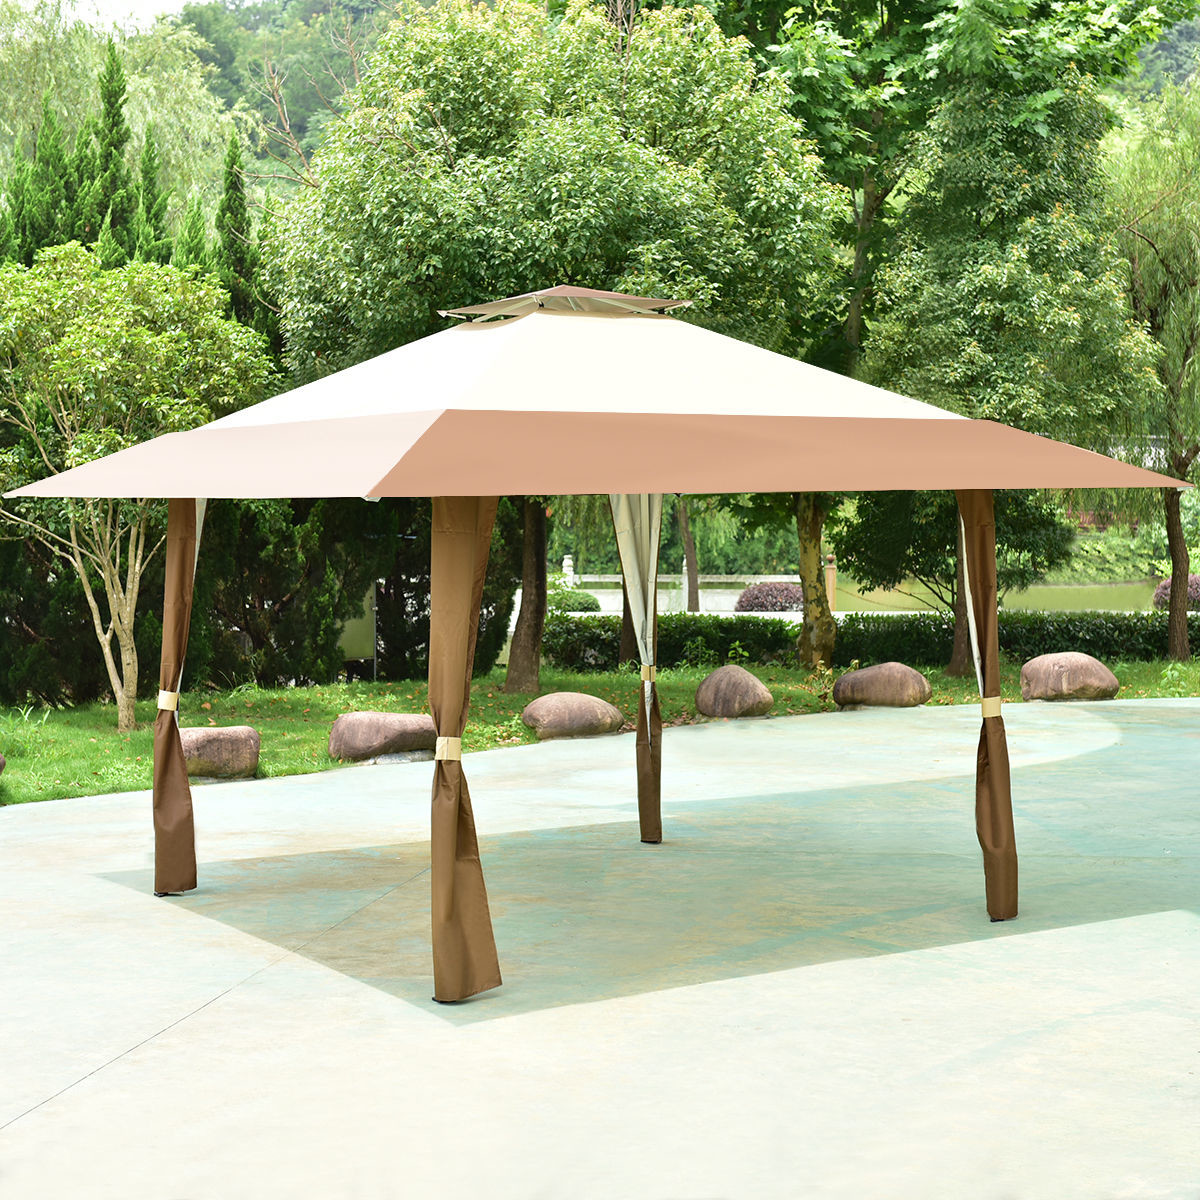 13'x13' Folding Gazebo Canopy Shelter Awning Tent Patio Garden Outdoor Companion by